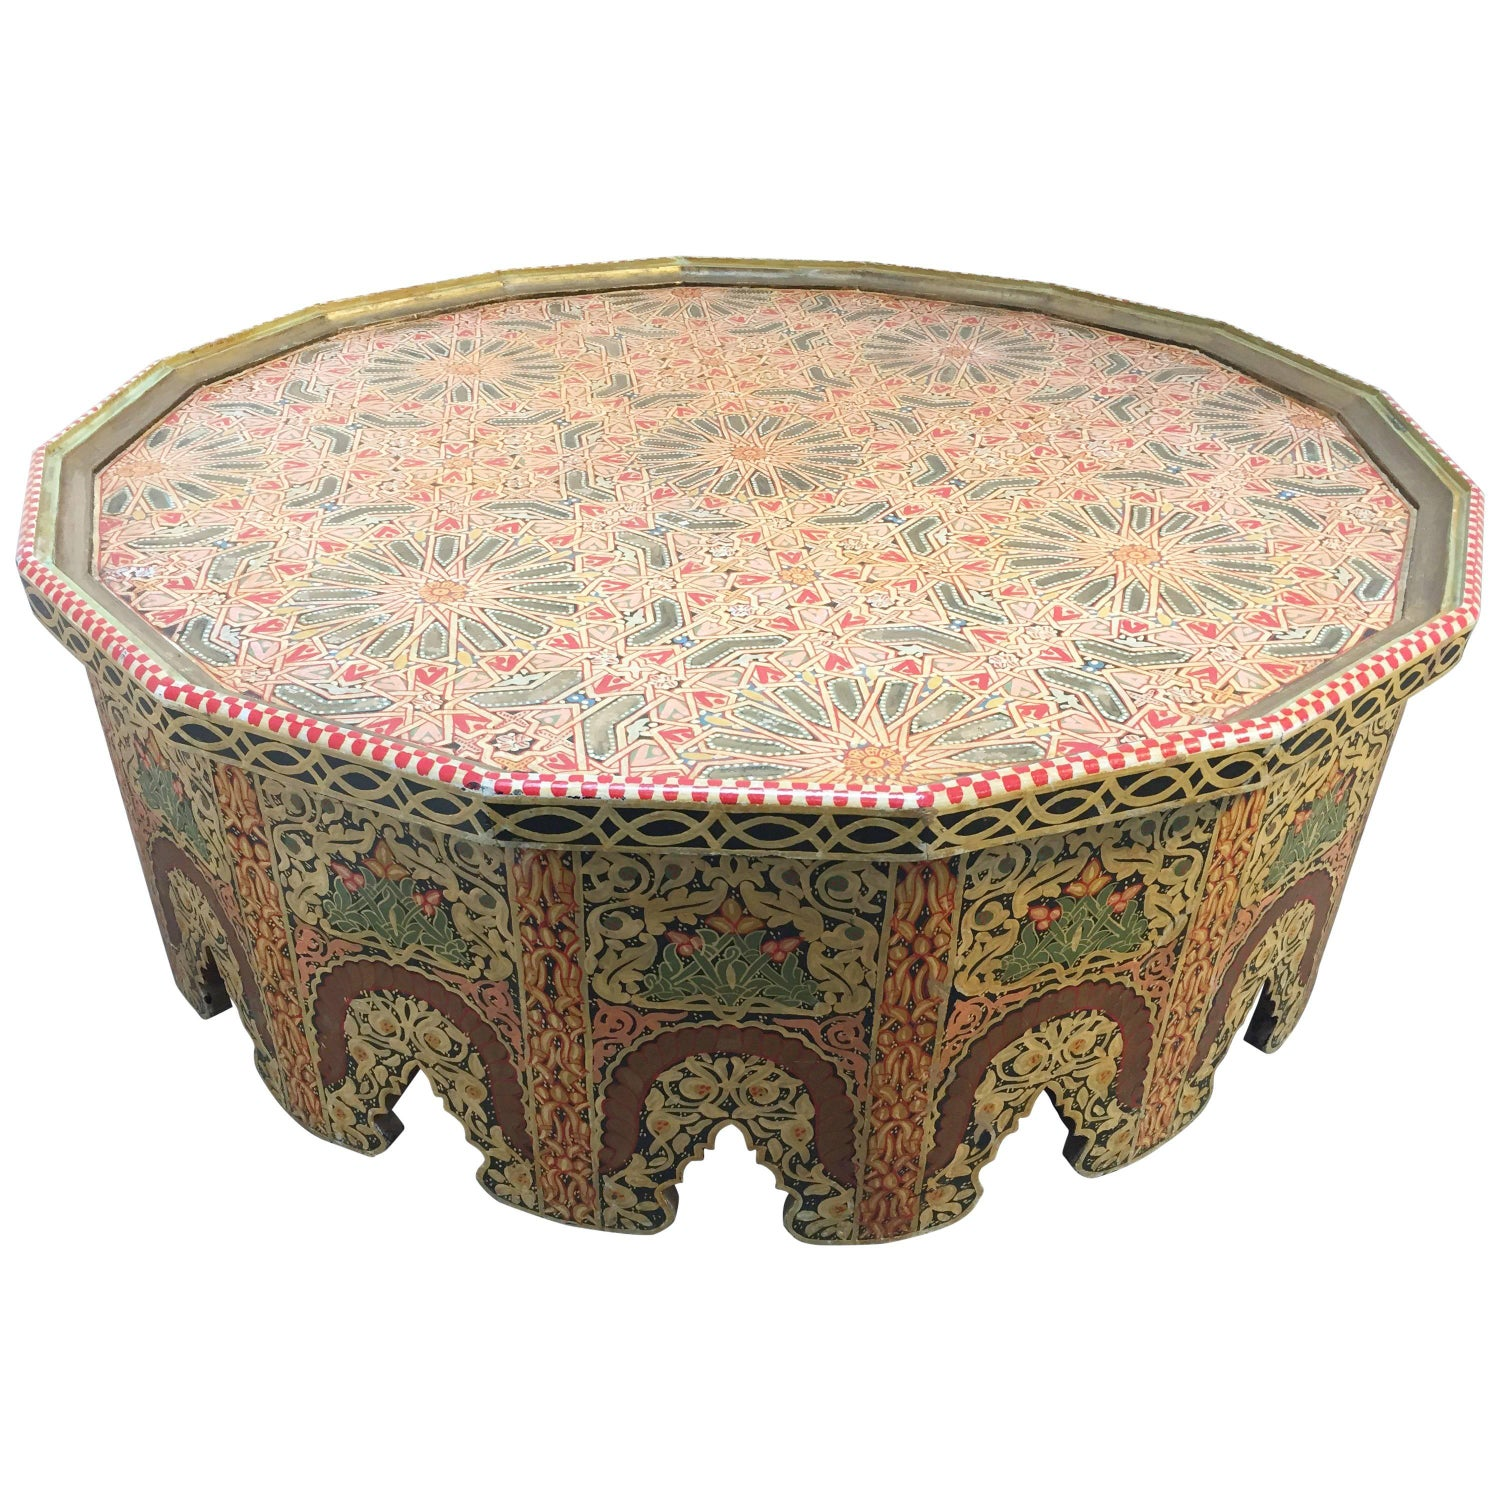 Moorish Tables 113 For Sale at 1stdibs